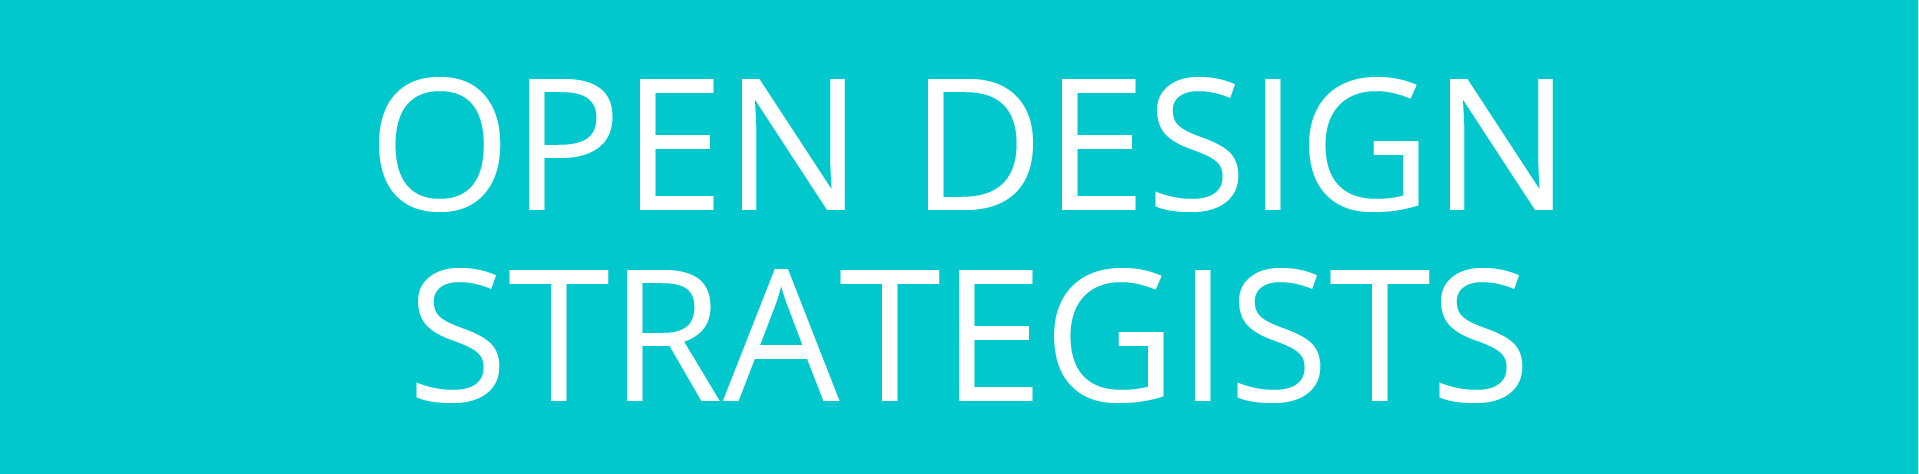 Open Design Strategists